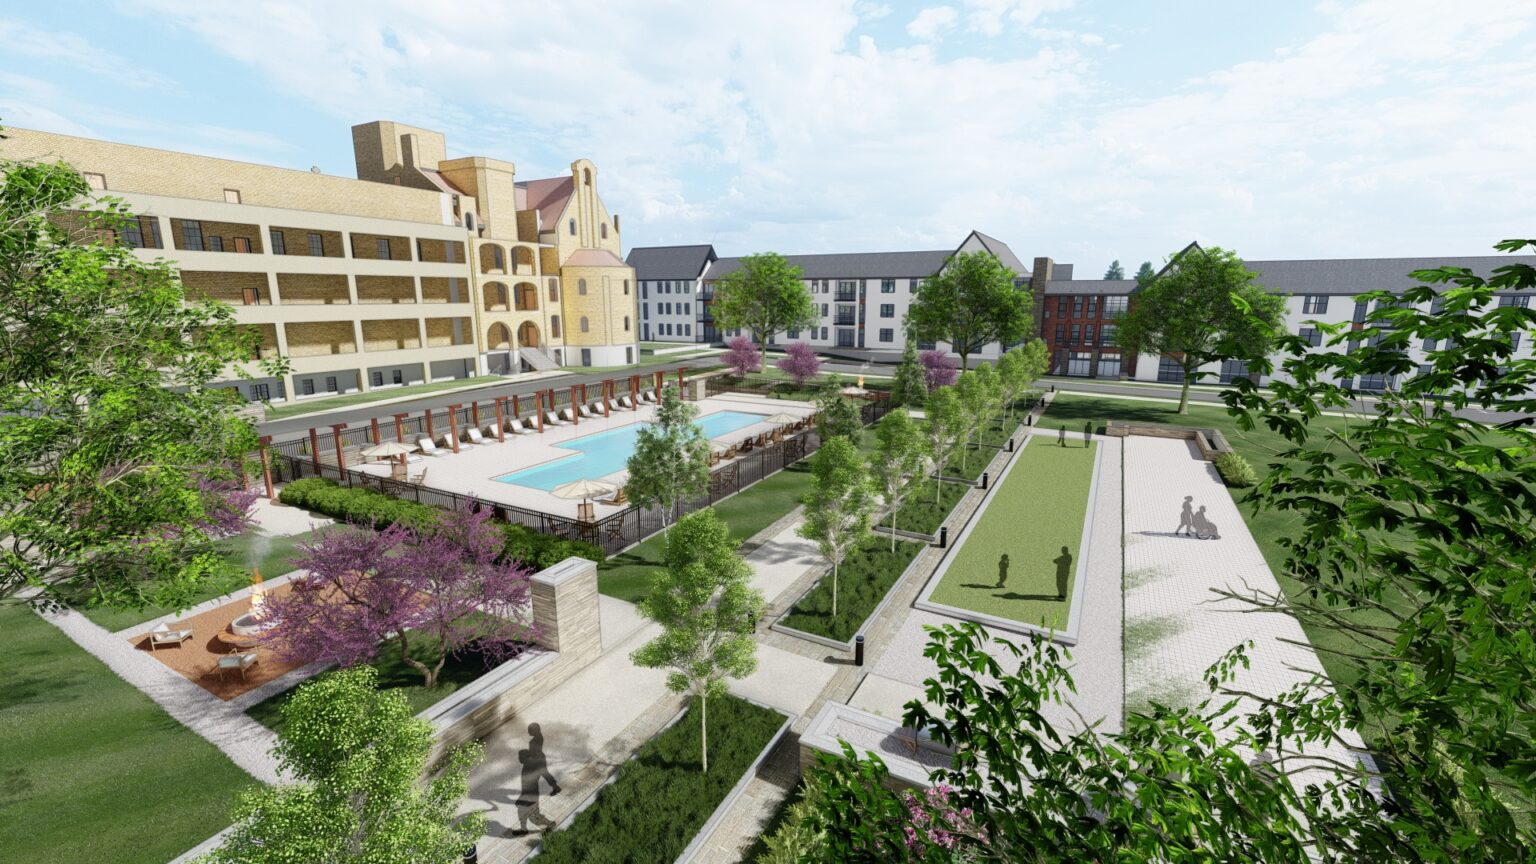 Luxury apartments, houses, possible senior units floated for Elm Grove Sisters of Notre Dame campus